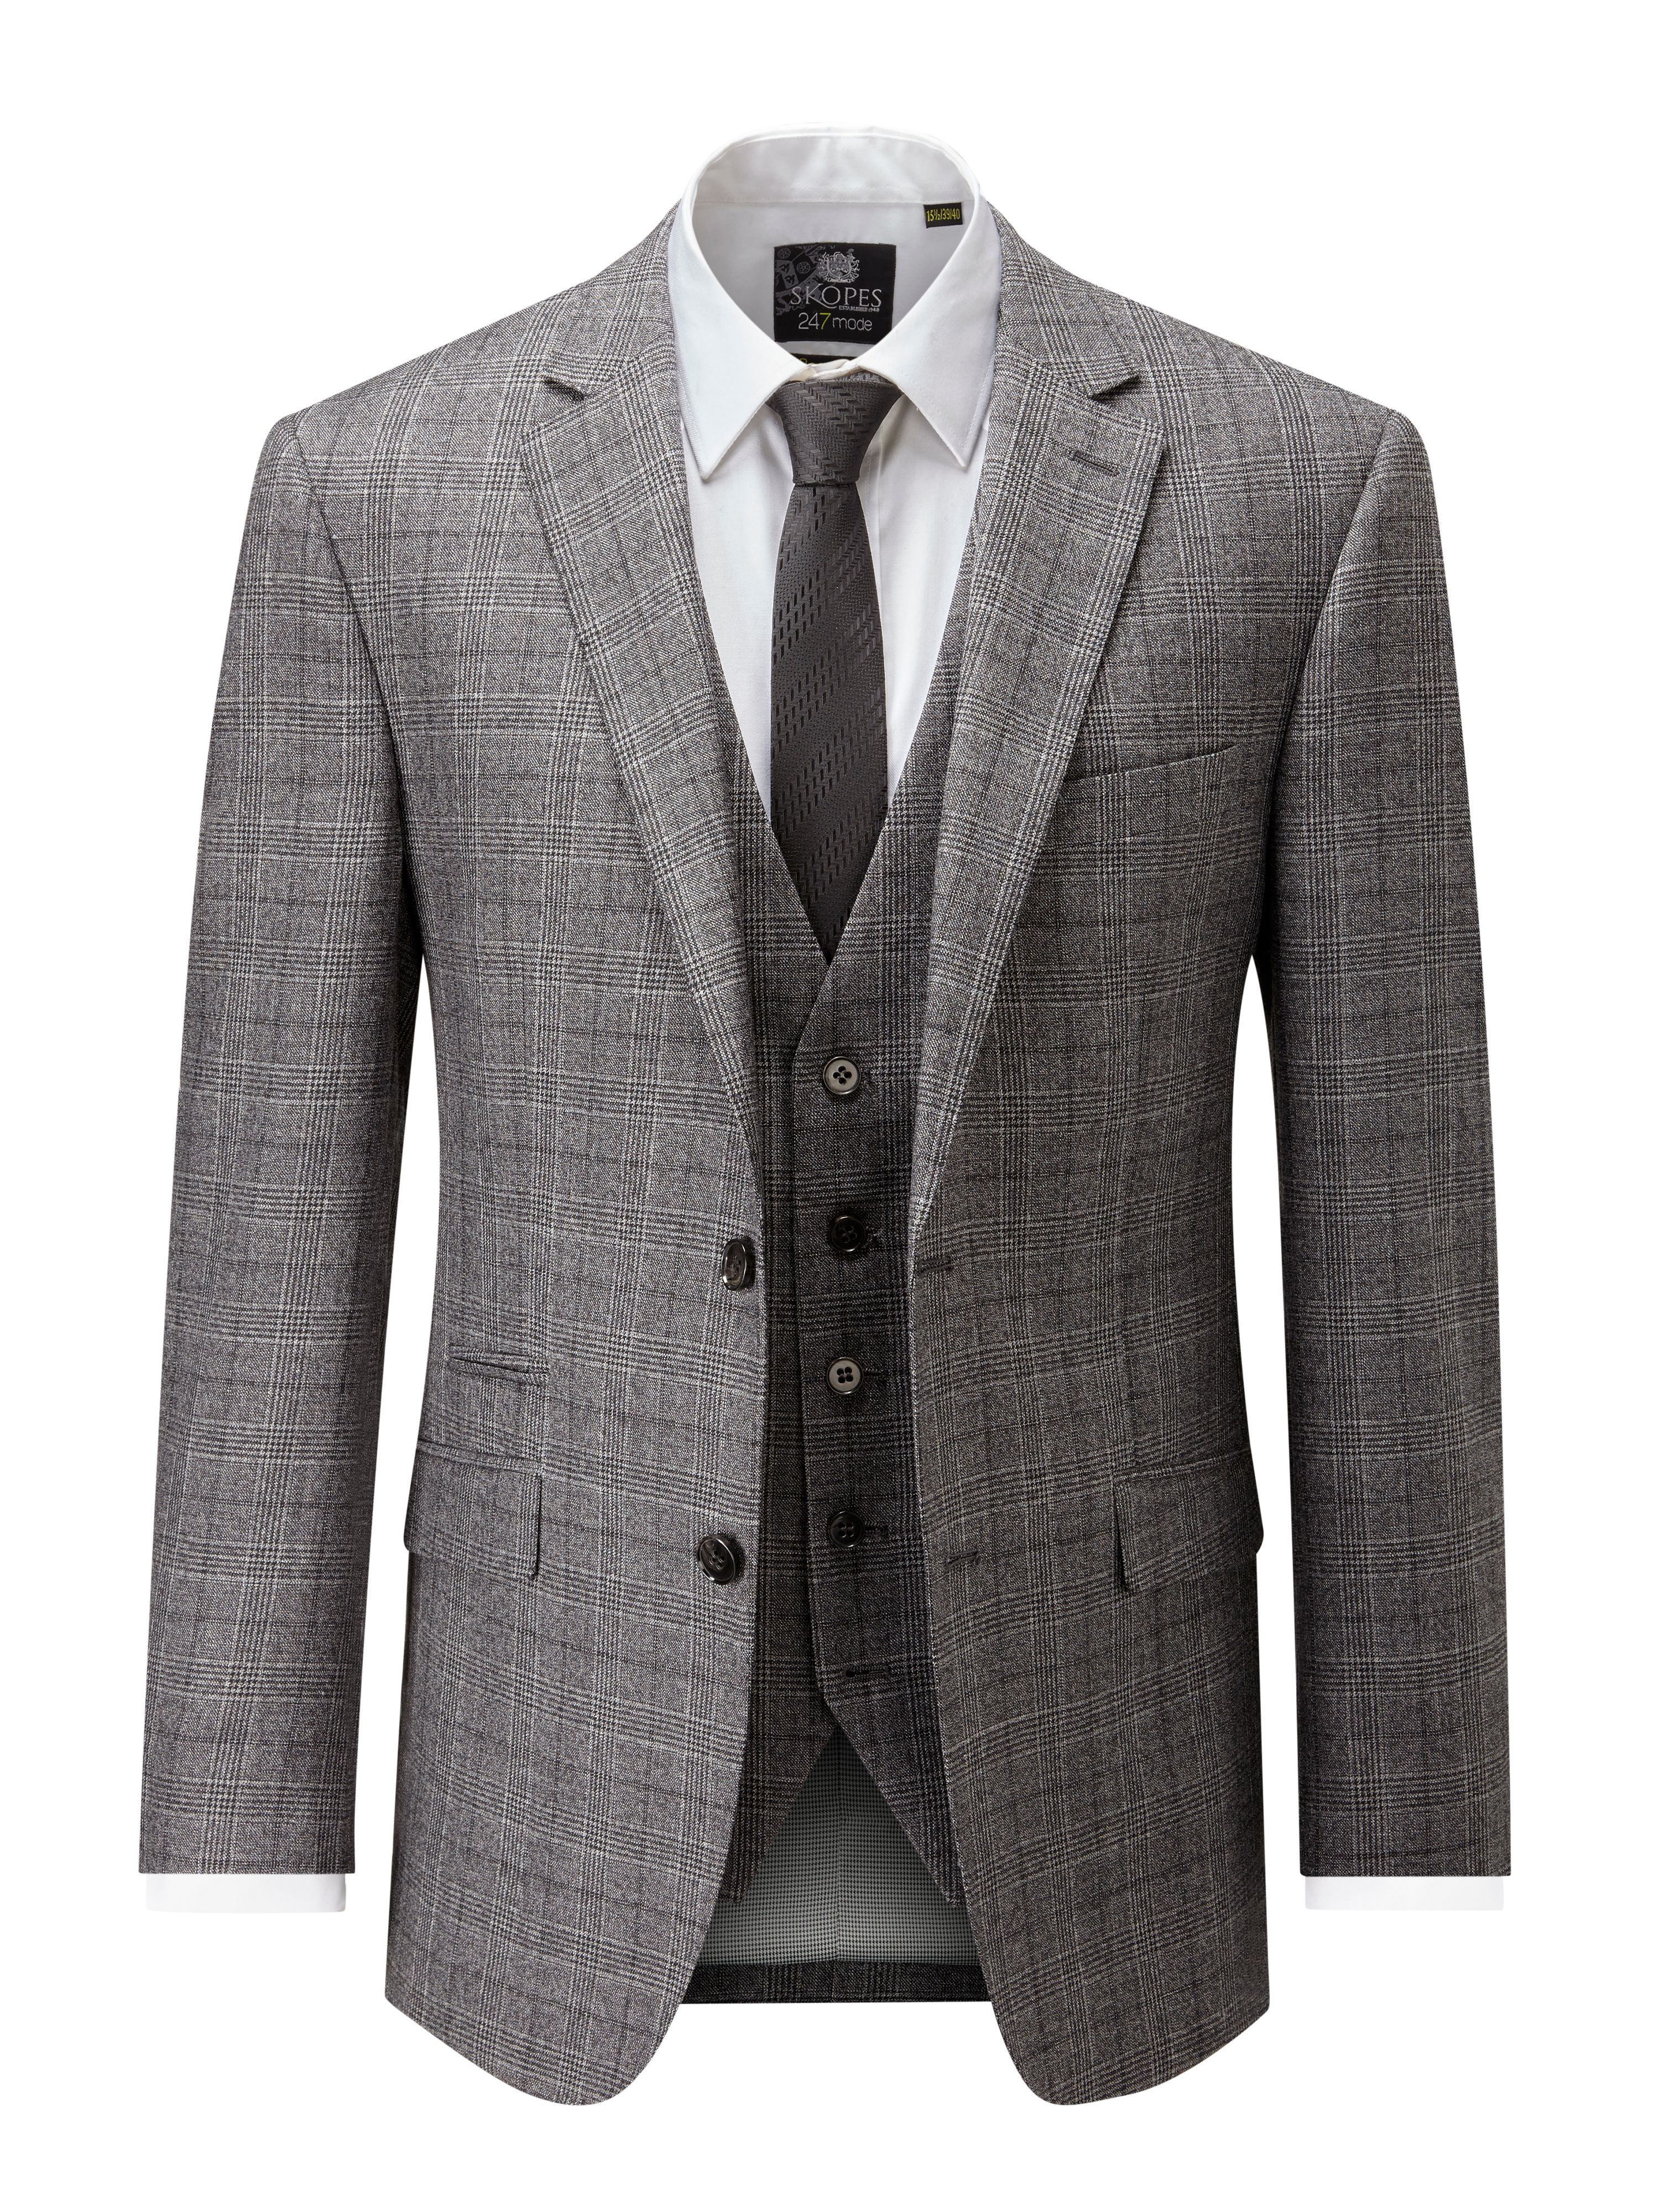 Buy Men S Skopes Callaghan Suit Jacket Charcoal For Just 85 00